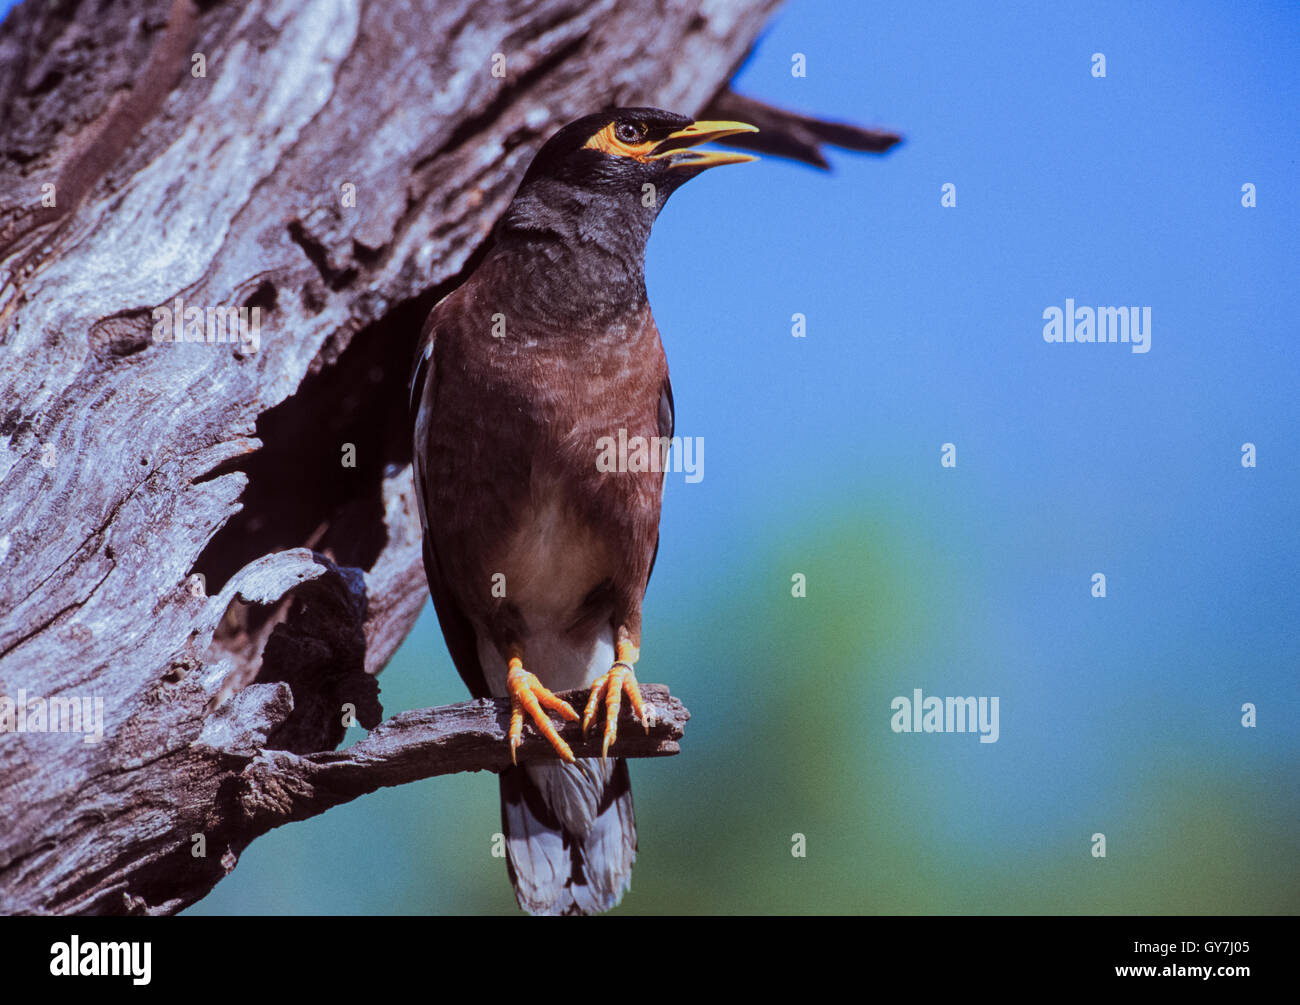 Common Myna,Acridotheres tristis,adult bird,Rajasthan,India,standing on branch near nest hole with beak open to - Stock Image